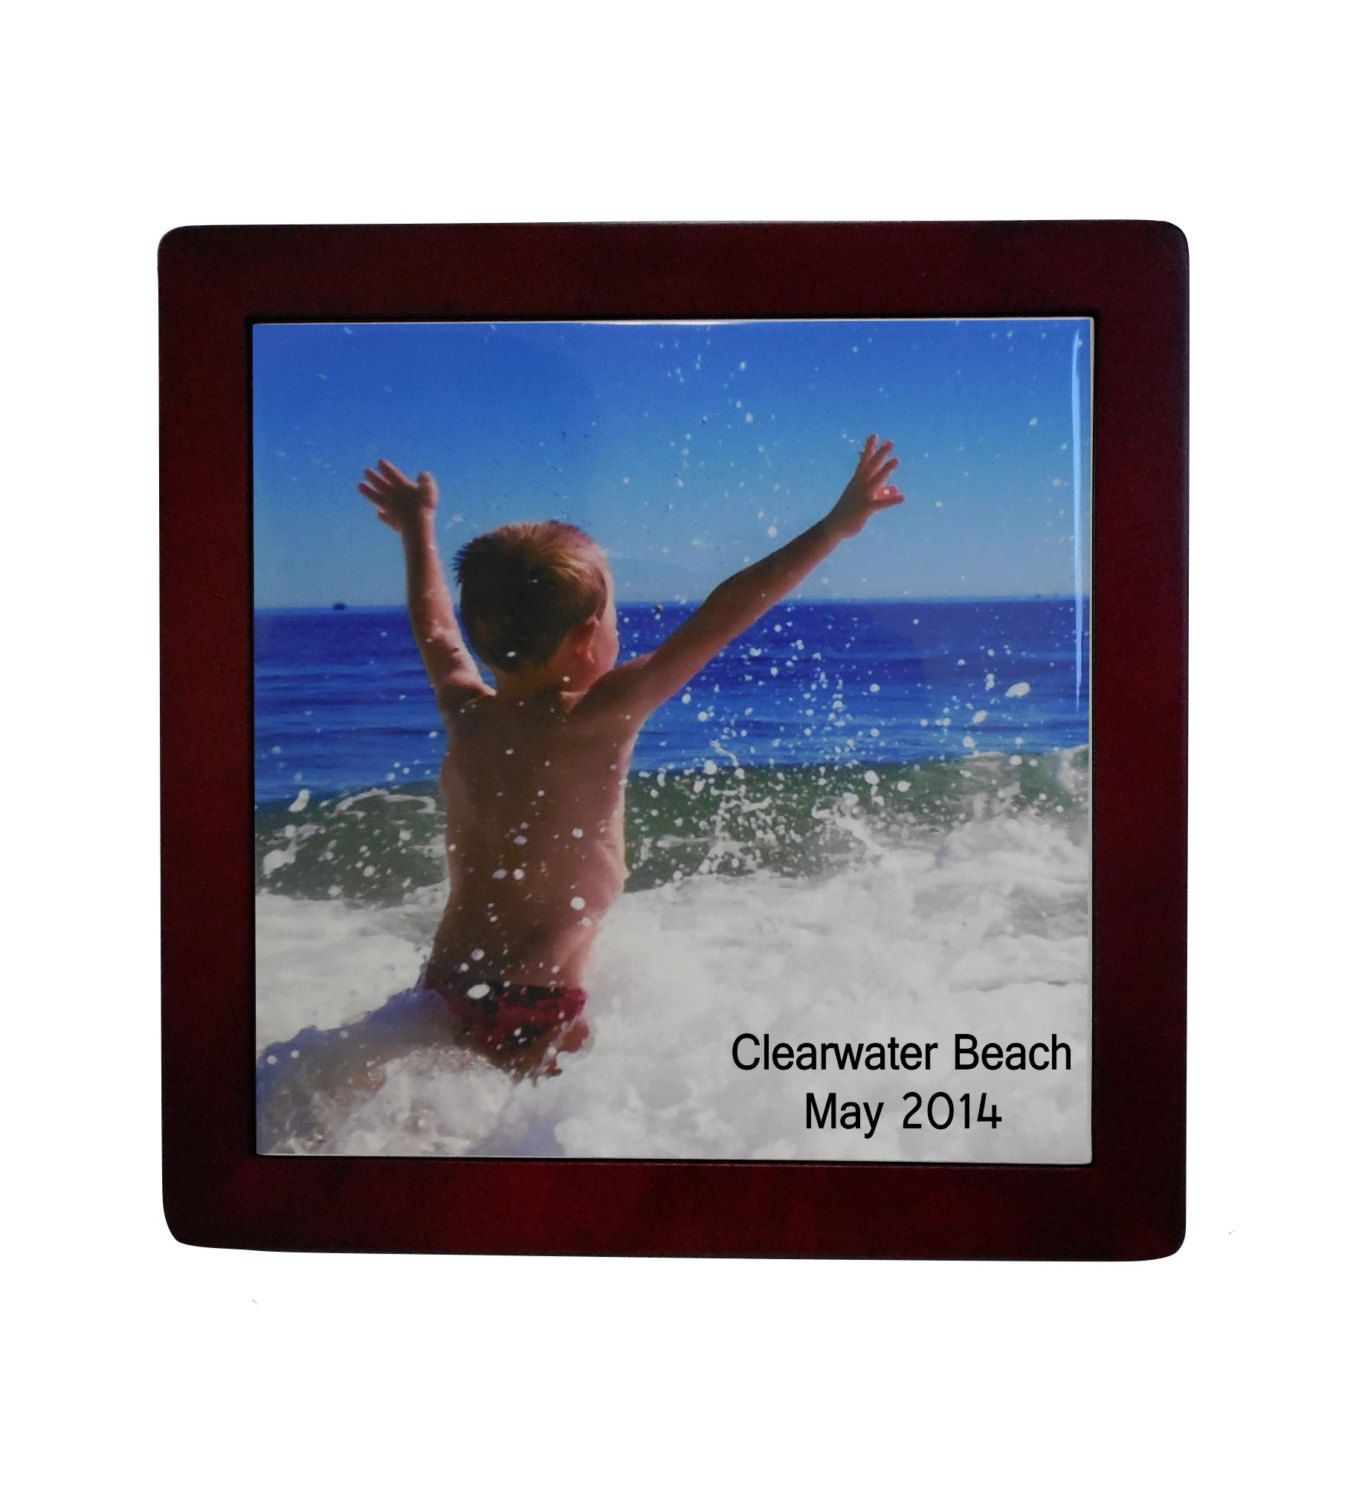 Vacation photo gifts personalized ceramic tile personalized vacation photo gifts personalized ceramic tile personalized gifts desktop display plaques by photogiftskalucaart dailygadgetfo Choice Image